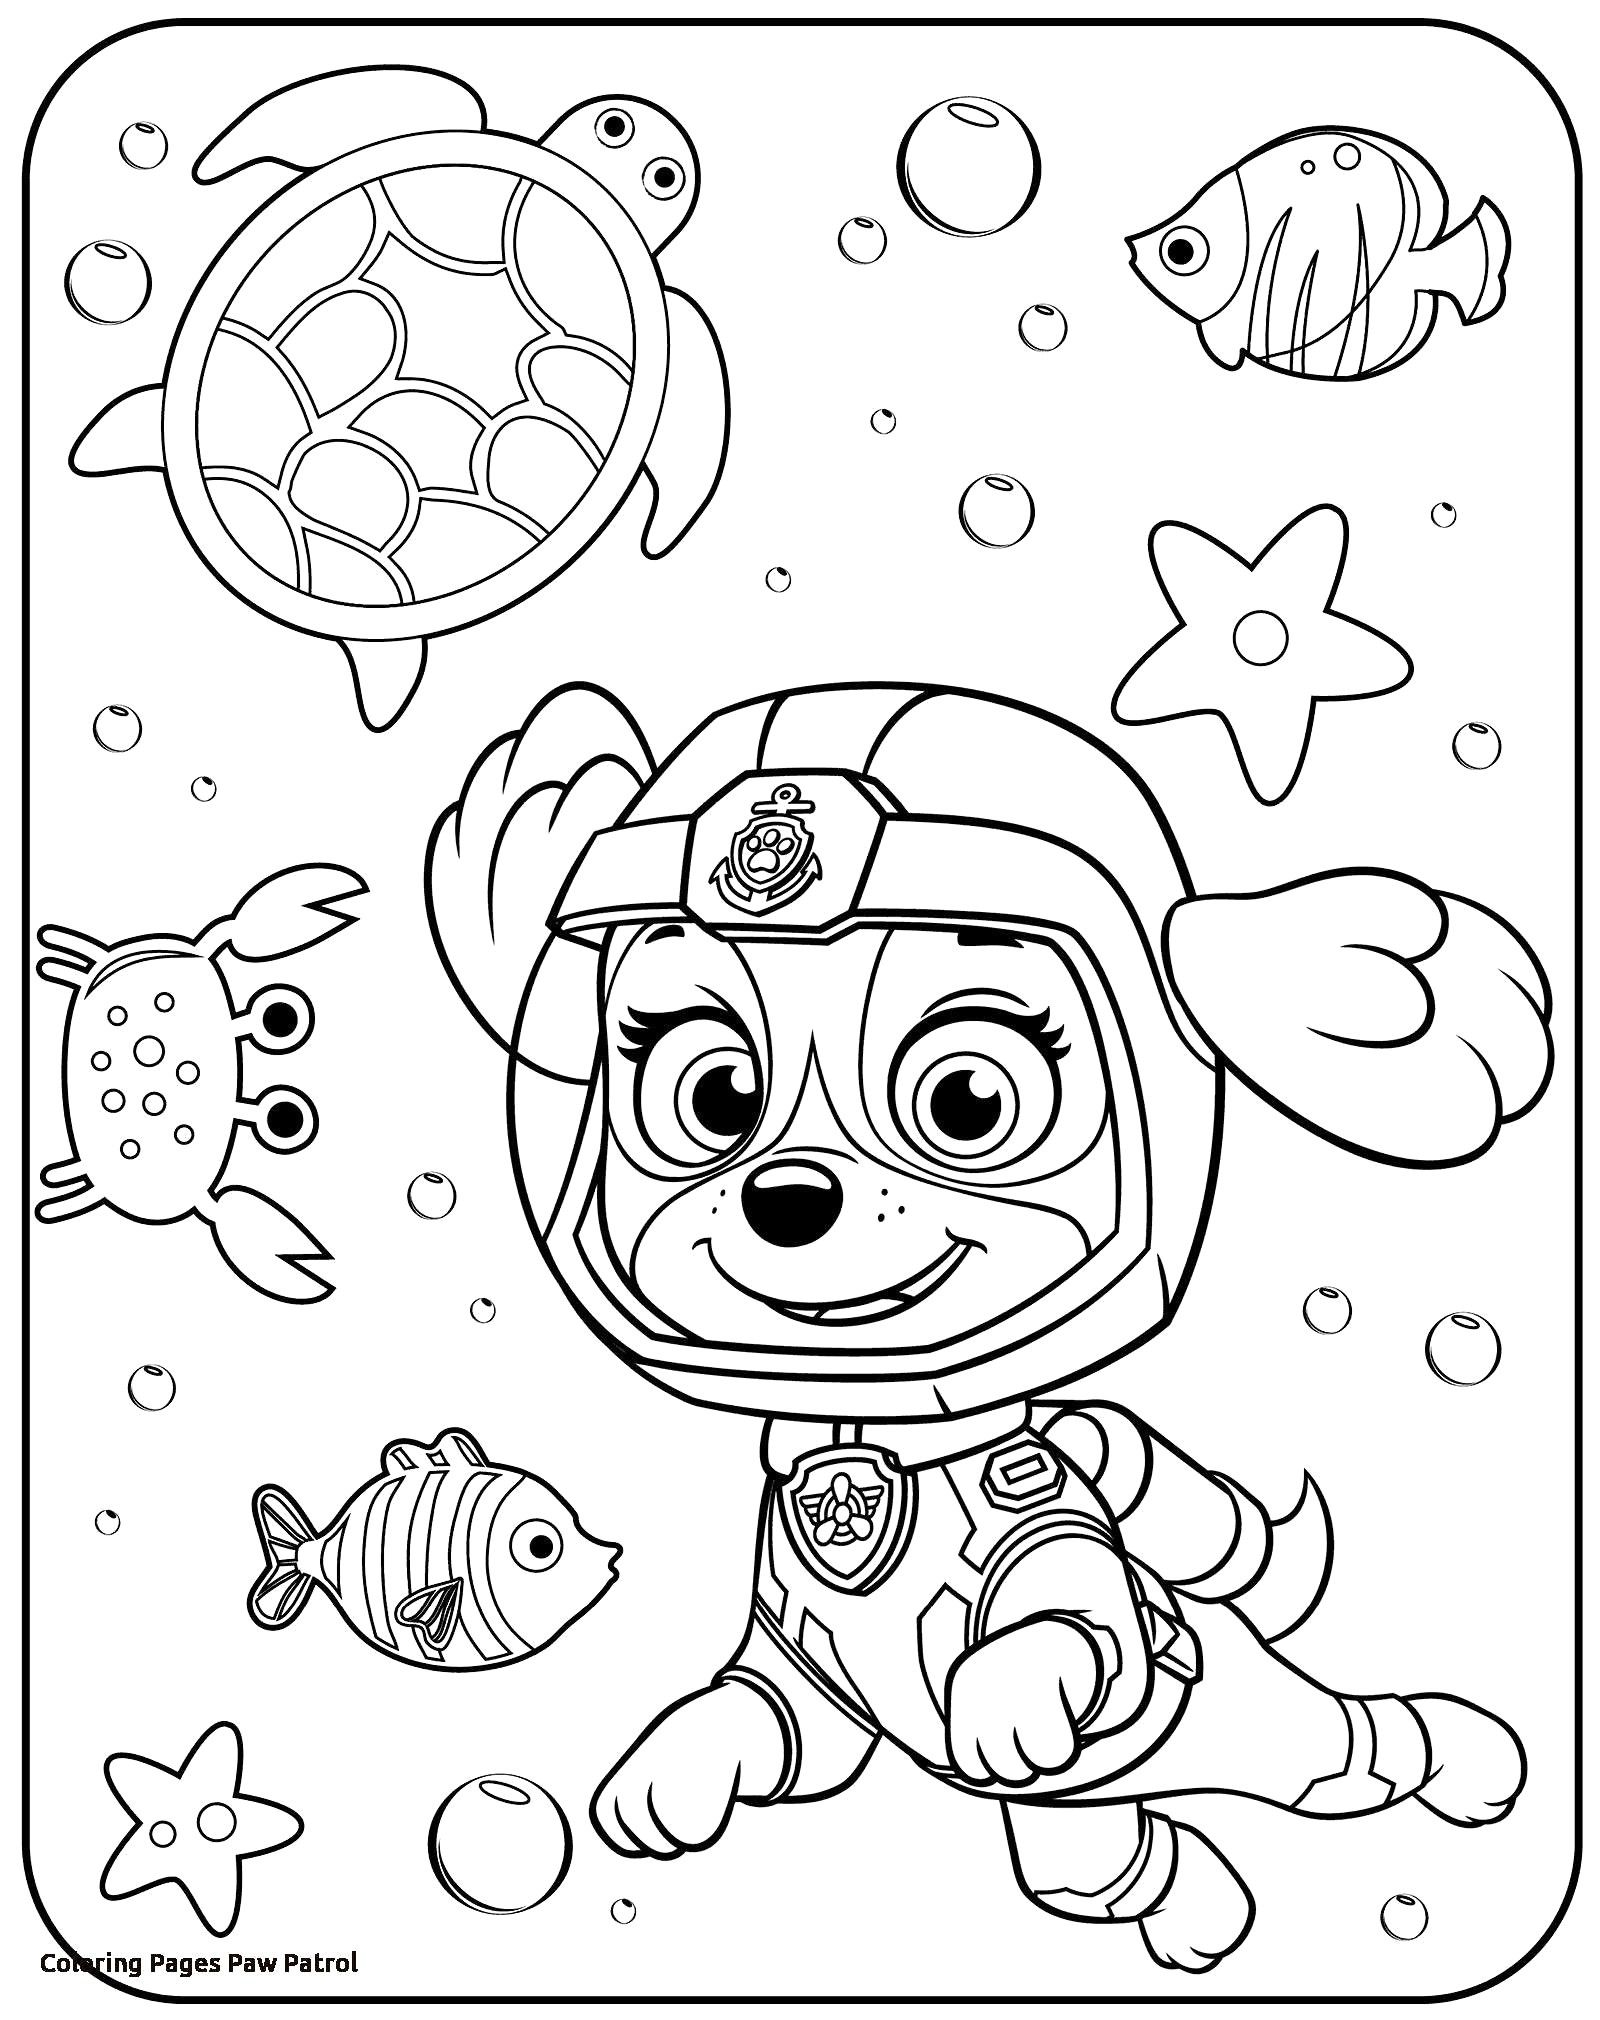 25 Creative Picture Of Free Paw Patrol Coloring Pages Albanysinsanity Com Paw Patrol Coloring Pages Paw Patrol Coloring Birthday Coloring Pages [ 2020 x 1600 Pixel ]